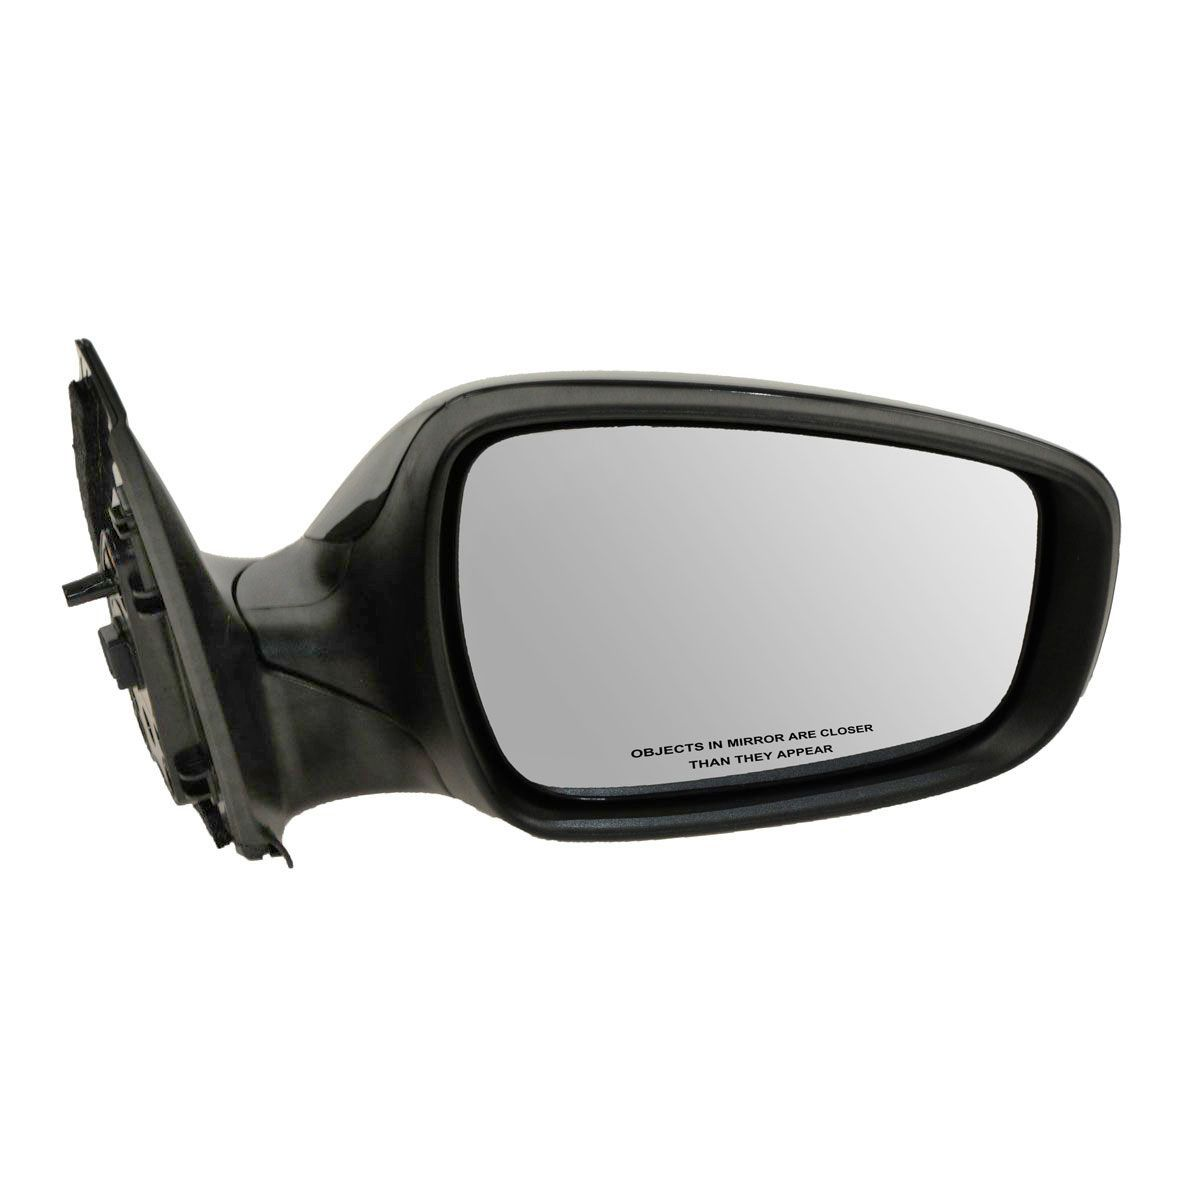 NEW Mirror Glass 03-06 HYUNDAI ACCENT Passenger Right Side RH **FAST SHIPPING**